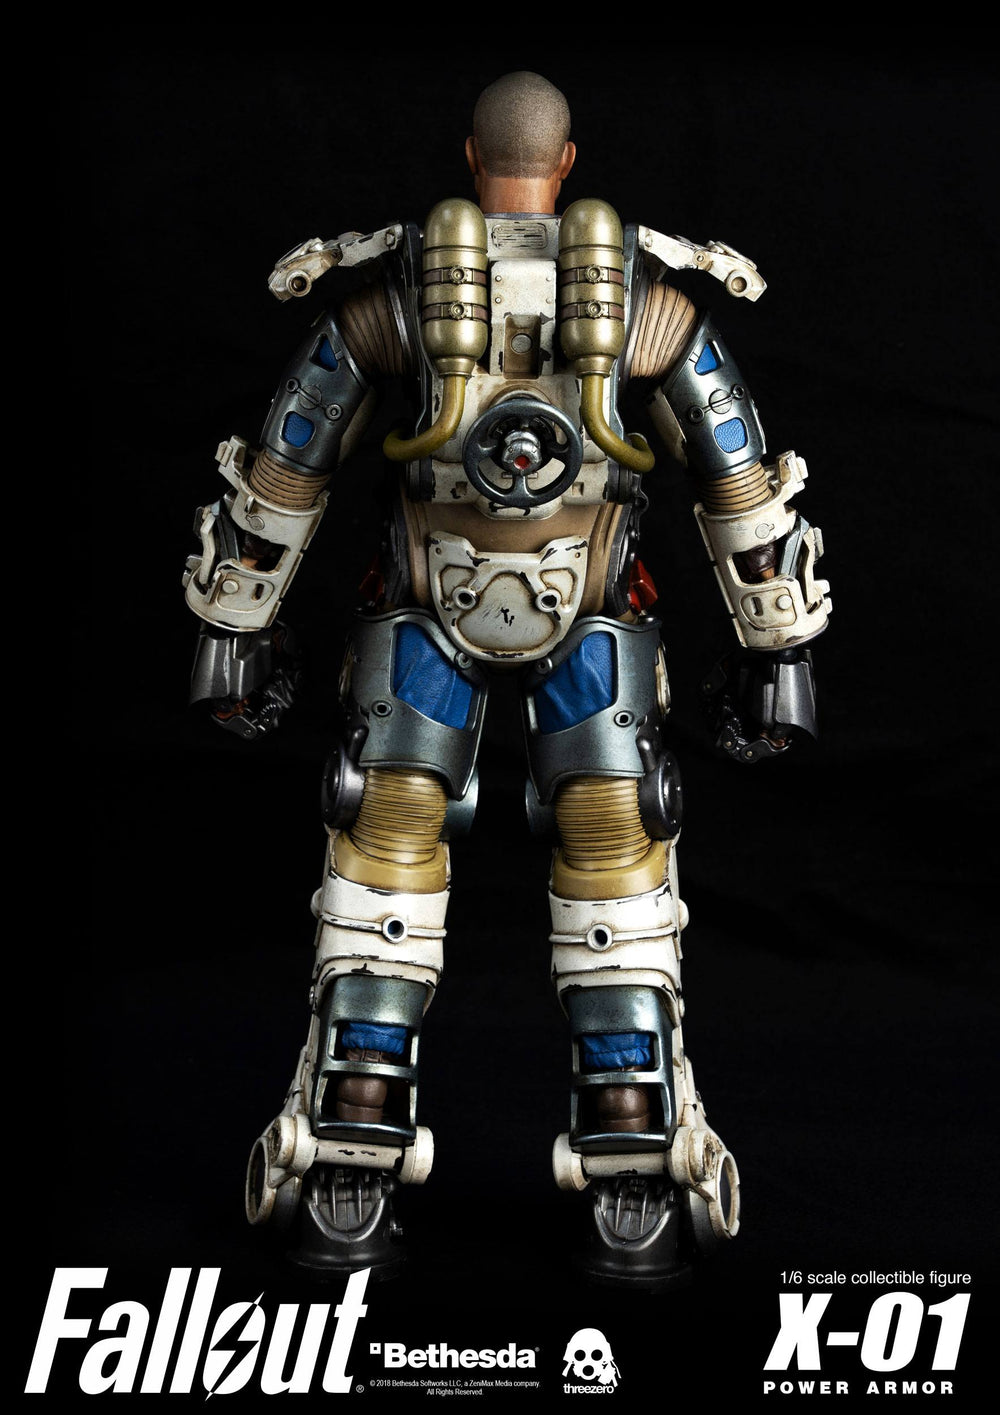 Threezero Fallout X-01 Power Armor 1/6 Action Figure